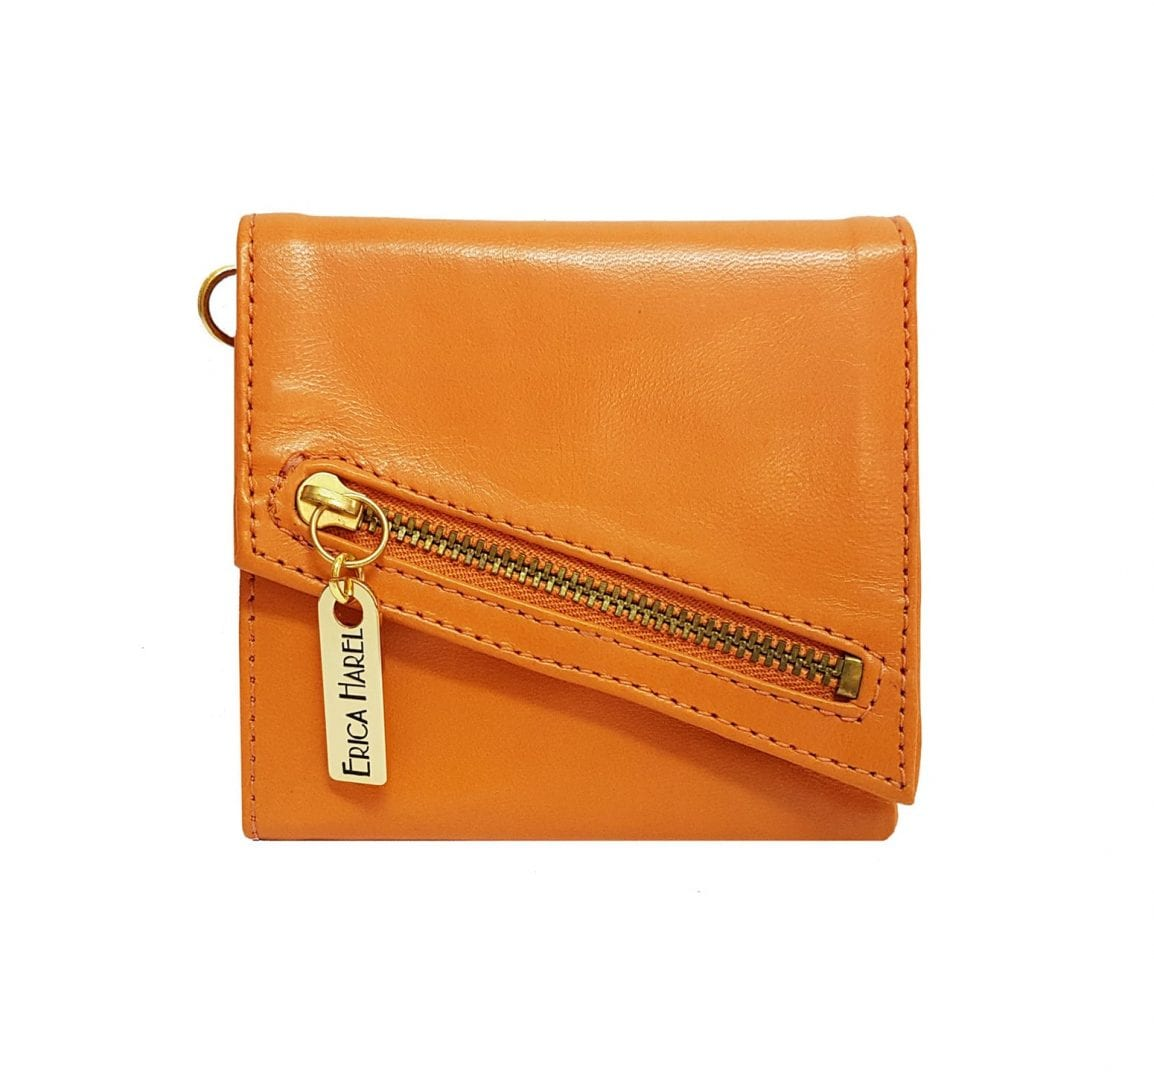 orange leather womens wallet